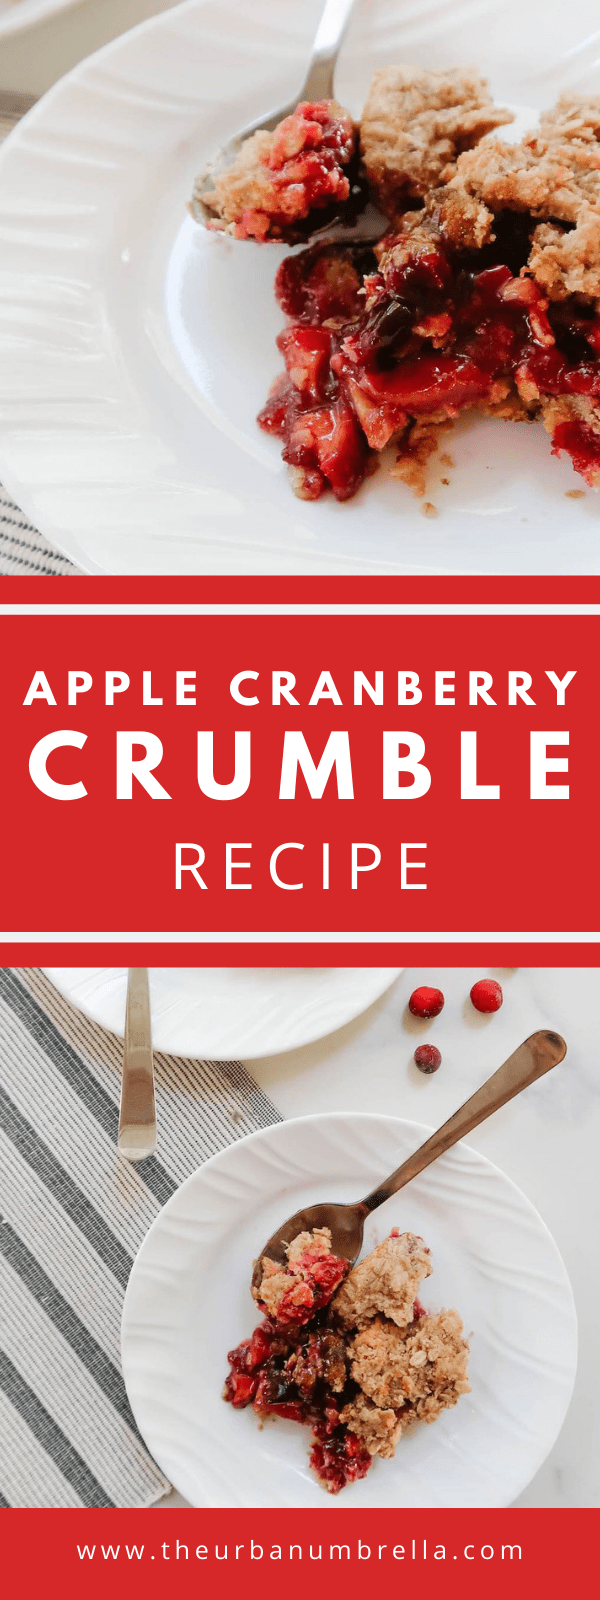 This sweet and tart Apple Cranberry Crumble Recipe is a fast, easy, and delicious fall recipe. It's great as both a breakfast or a dessert dish. Simply serve with ice cream for dessert, or yogurt for breakfast!